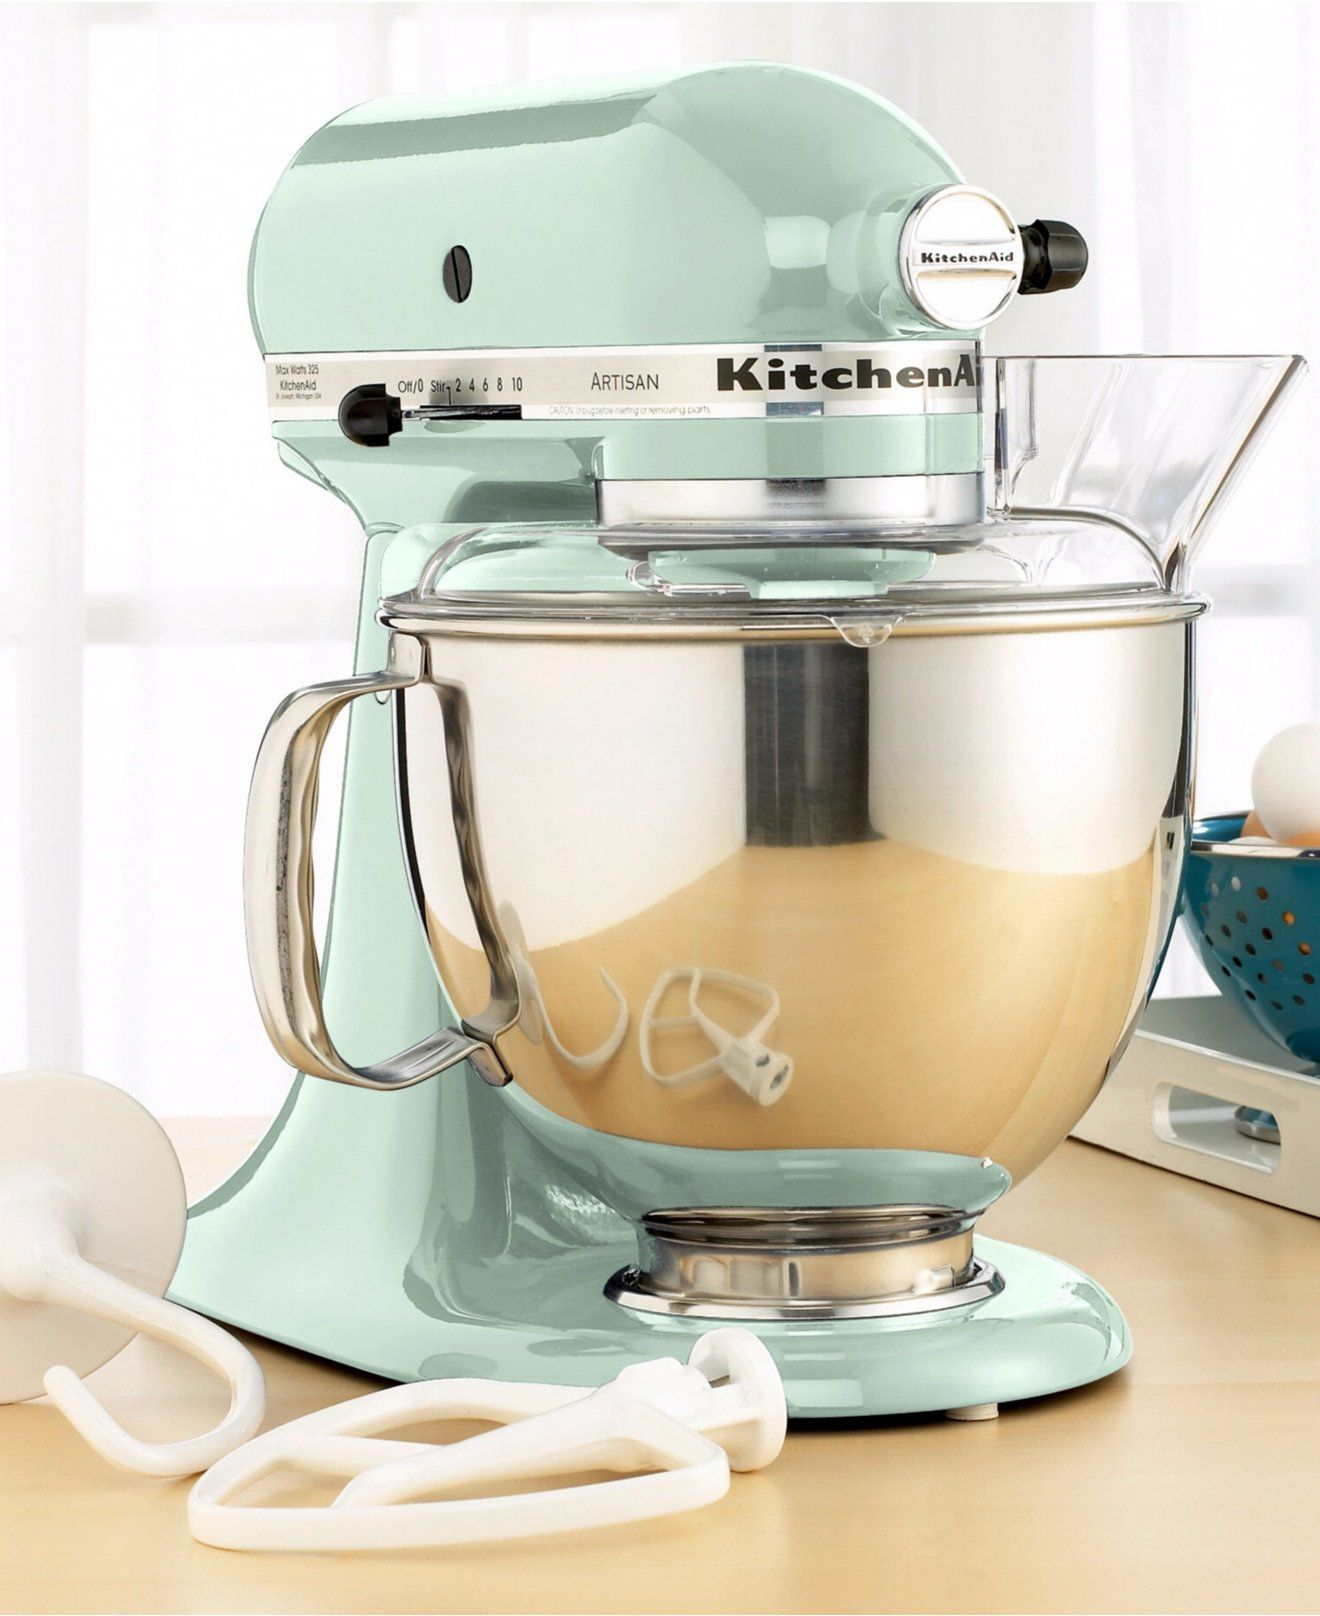 Amazon.com: KitchenAid KSM150PSCU Artisan Series 5-Qt. Stand Mixer with  Pouring Shield - Contour Silver: Electric Stand Mixers: Kitchen & Dining